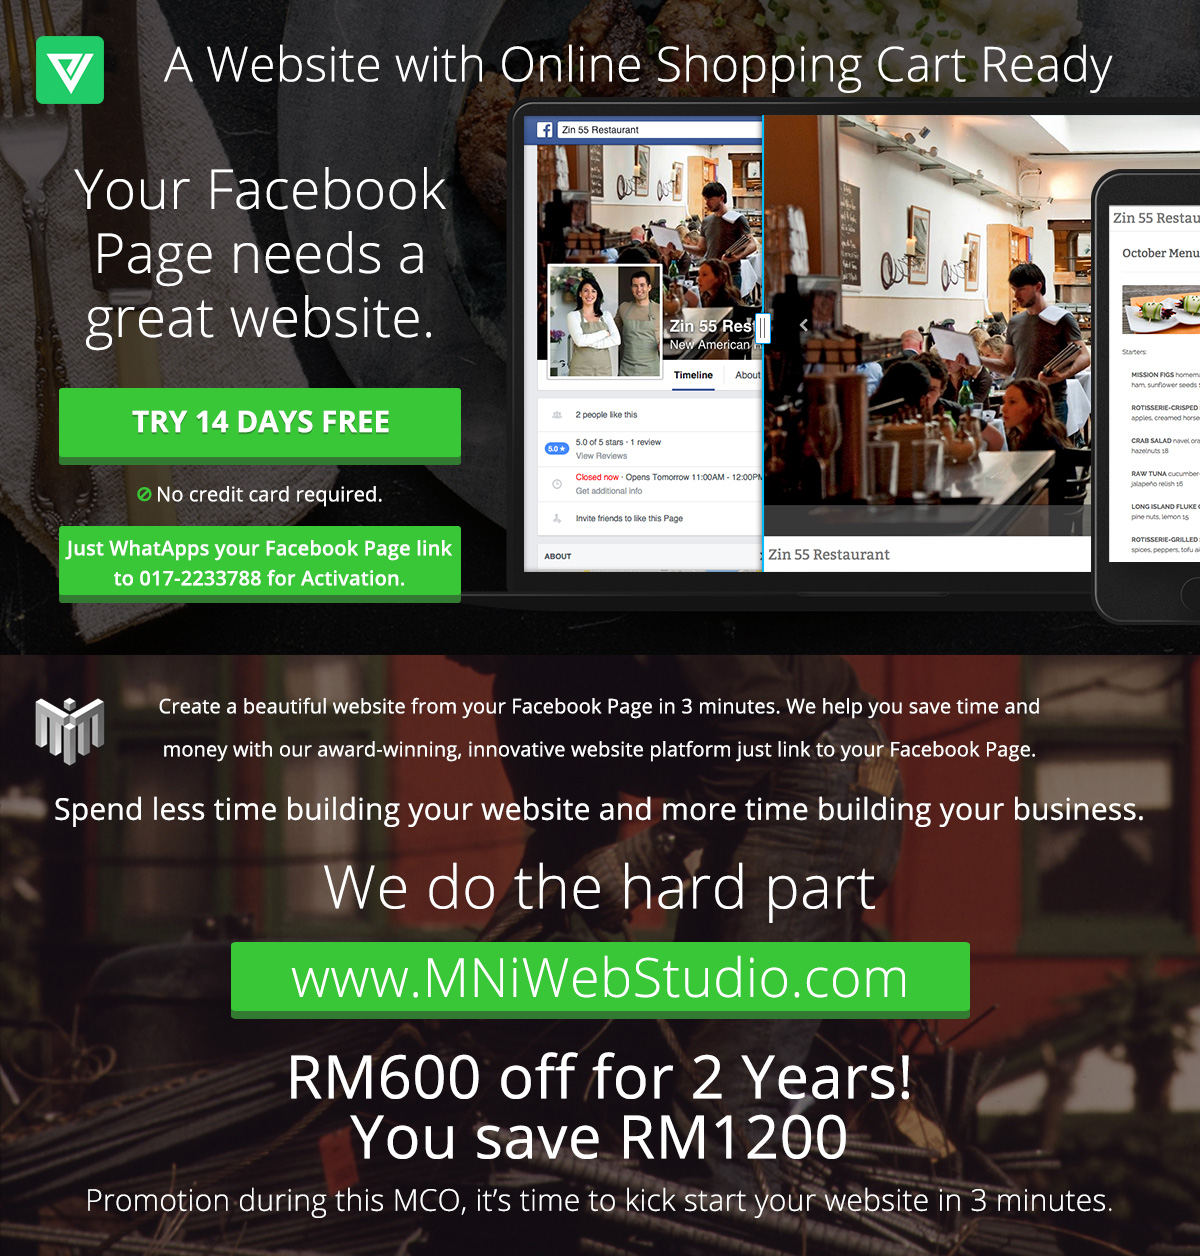 MCO Promotion You SAVE RM1200